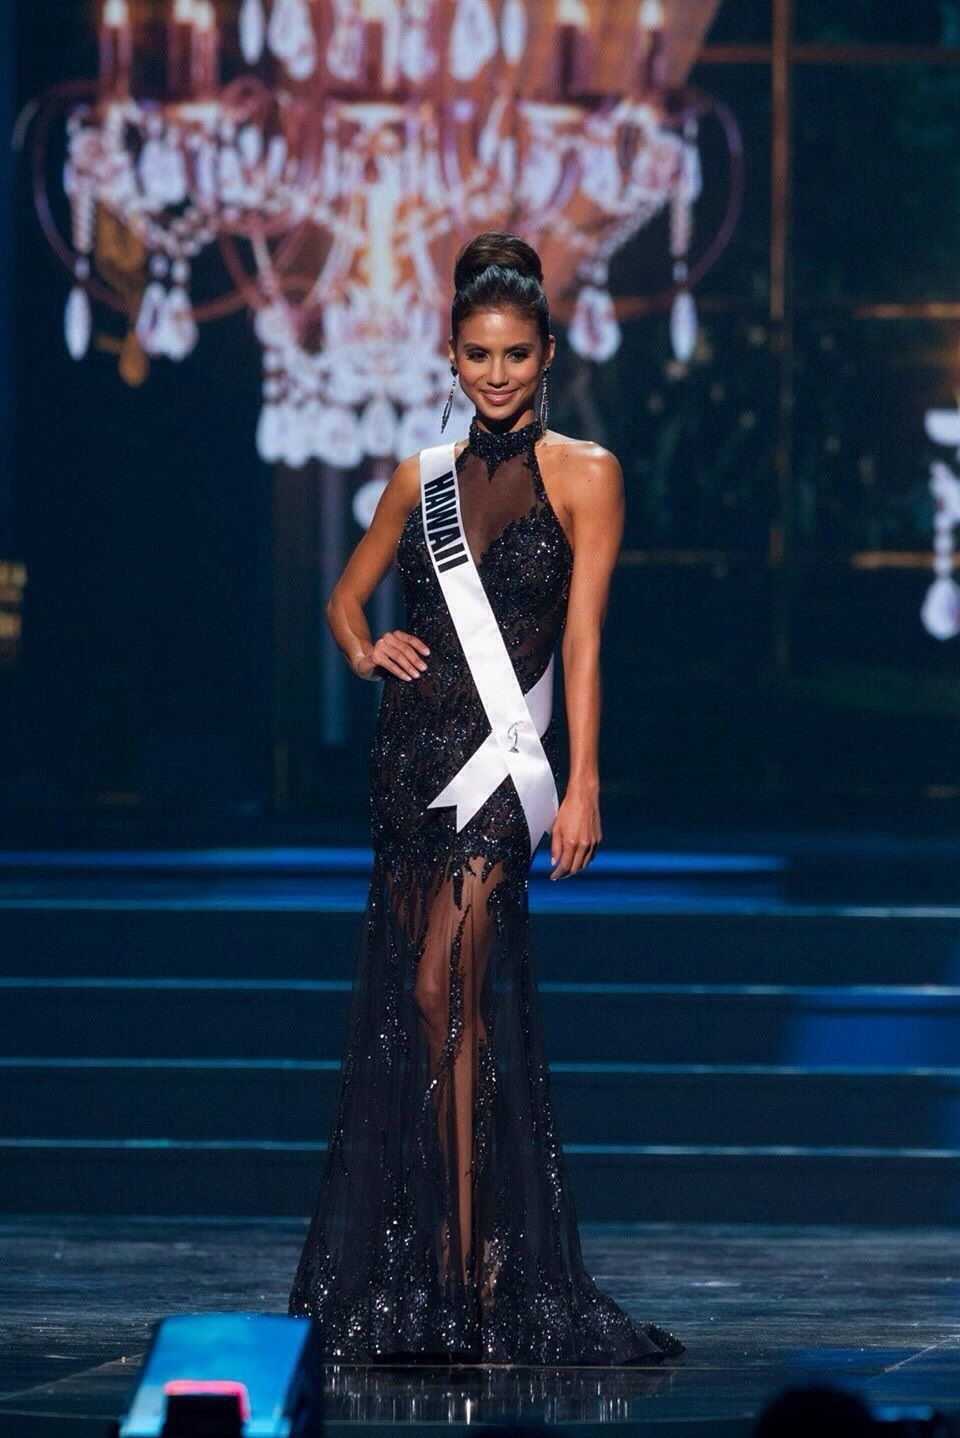 miss hawaii, miss usa, pageant evening gown | Prom | Pinterest ...